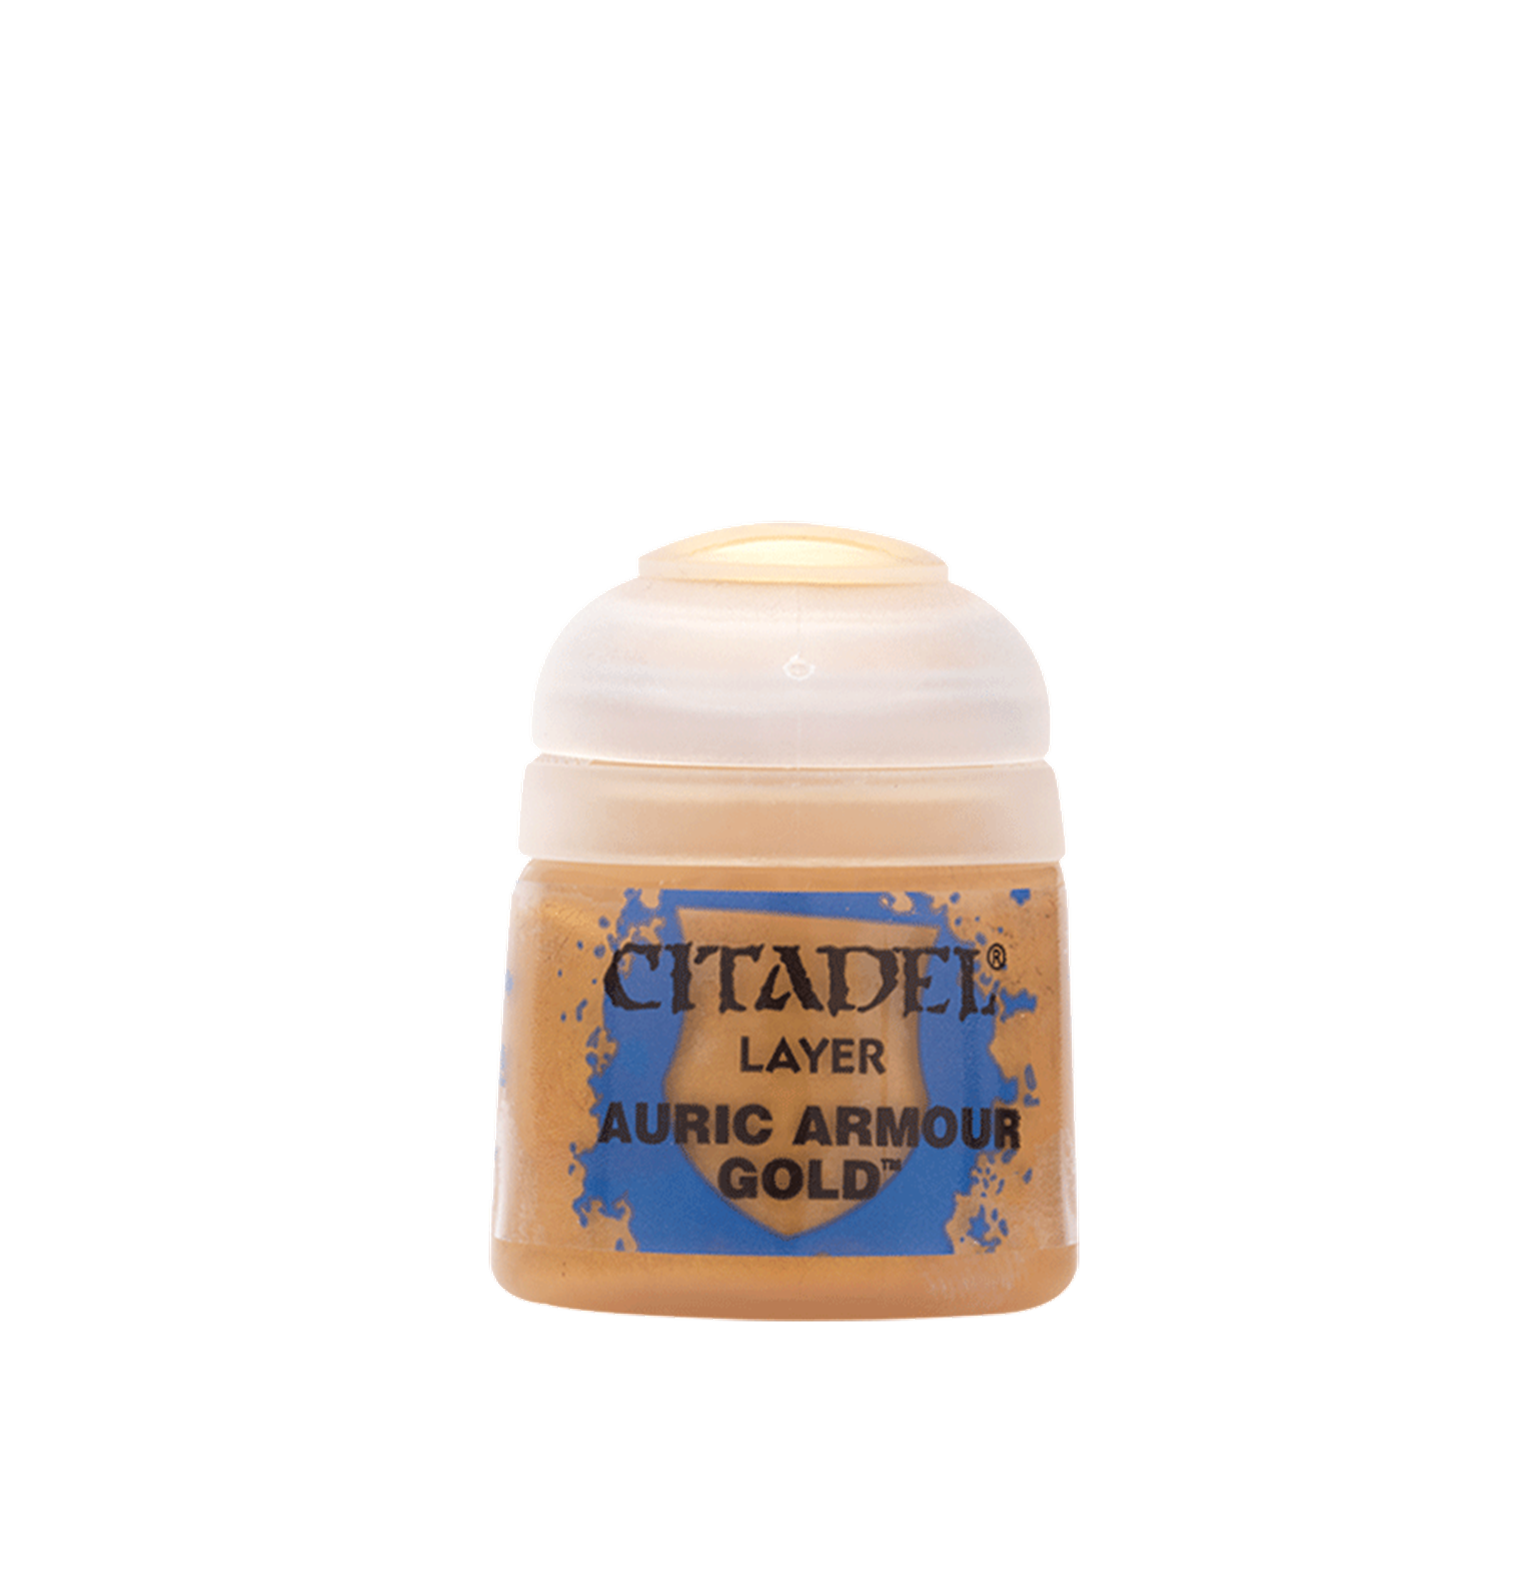 CITADEL LAYER Auric Armour Gold PAINT POT